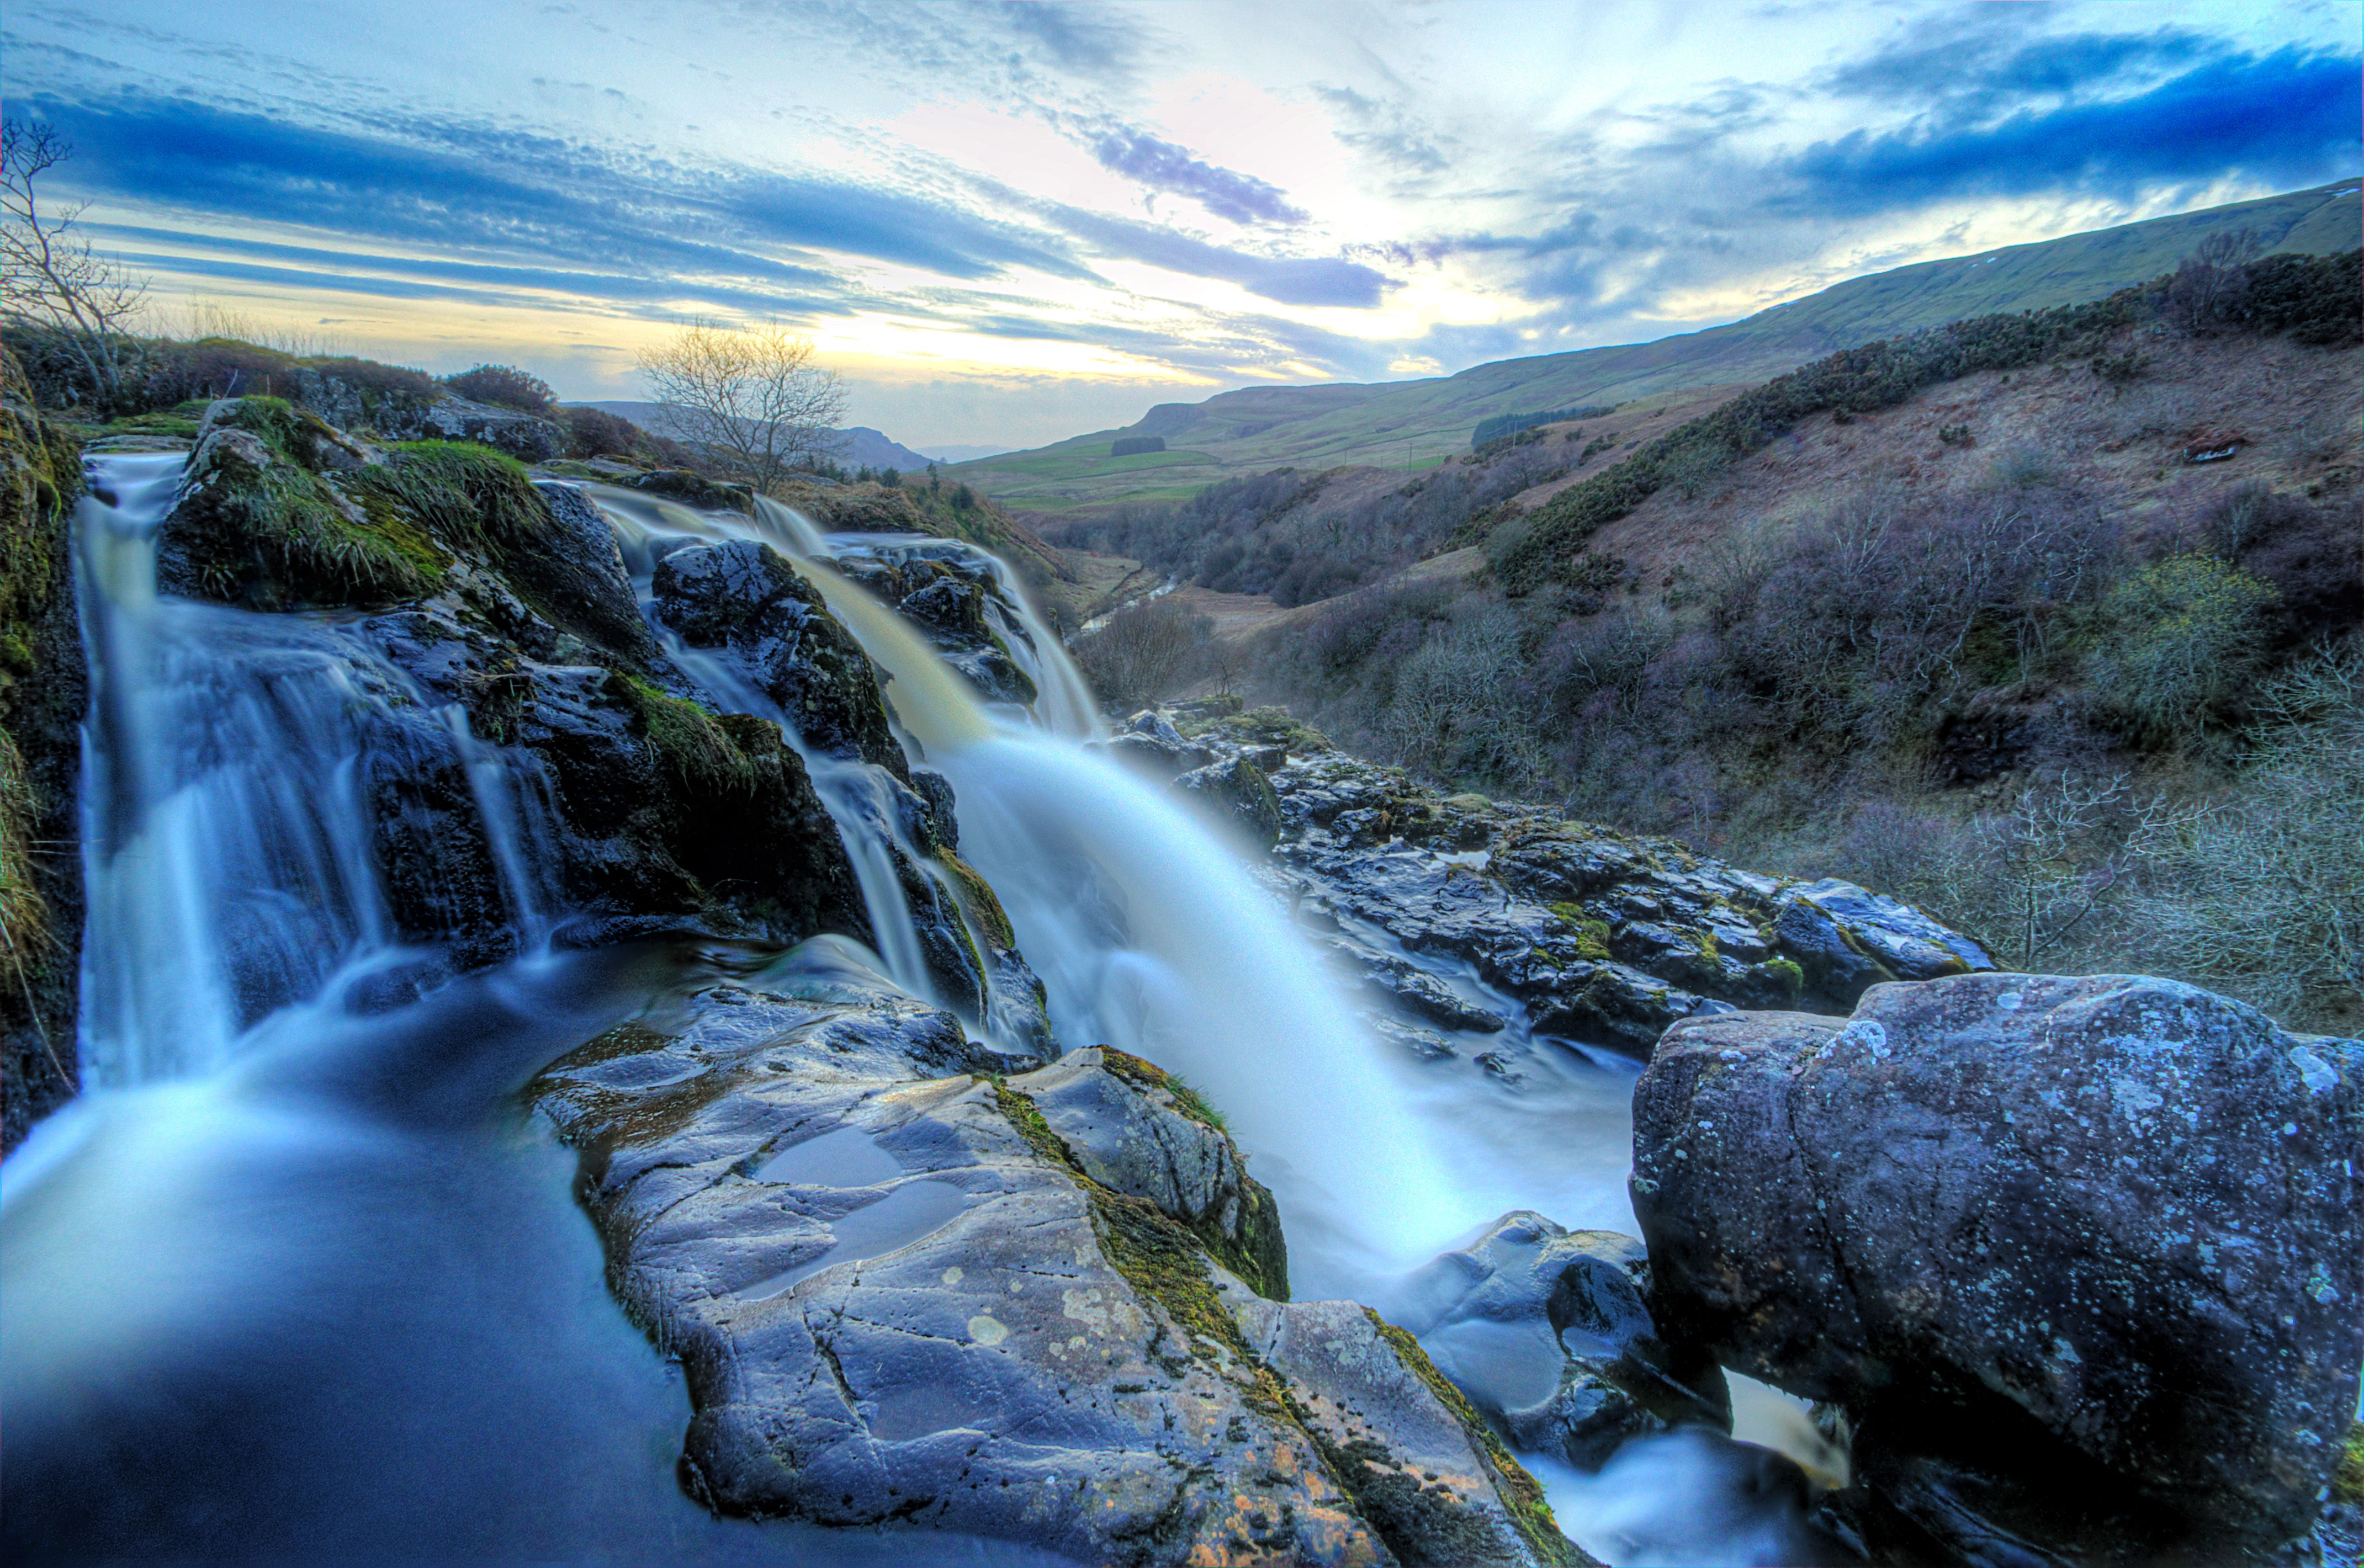 High Resolution Wallpaper   Loup Of Fintry Waterfall 4282x2841 px